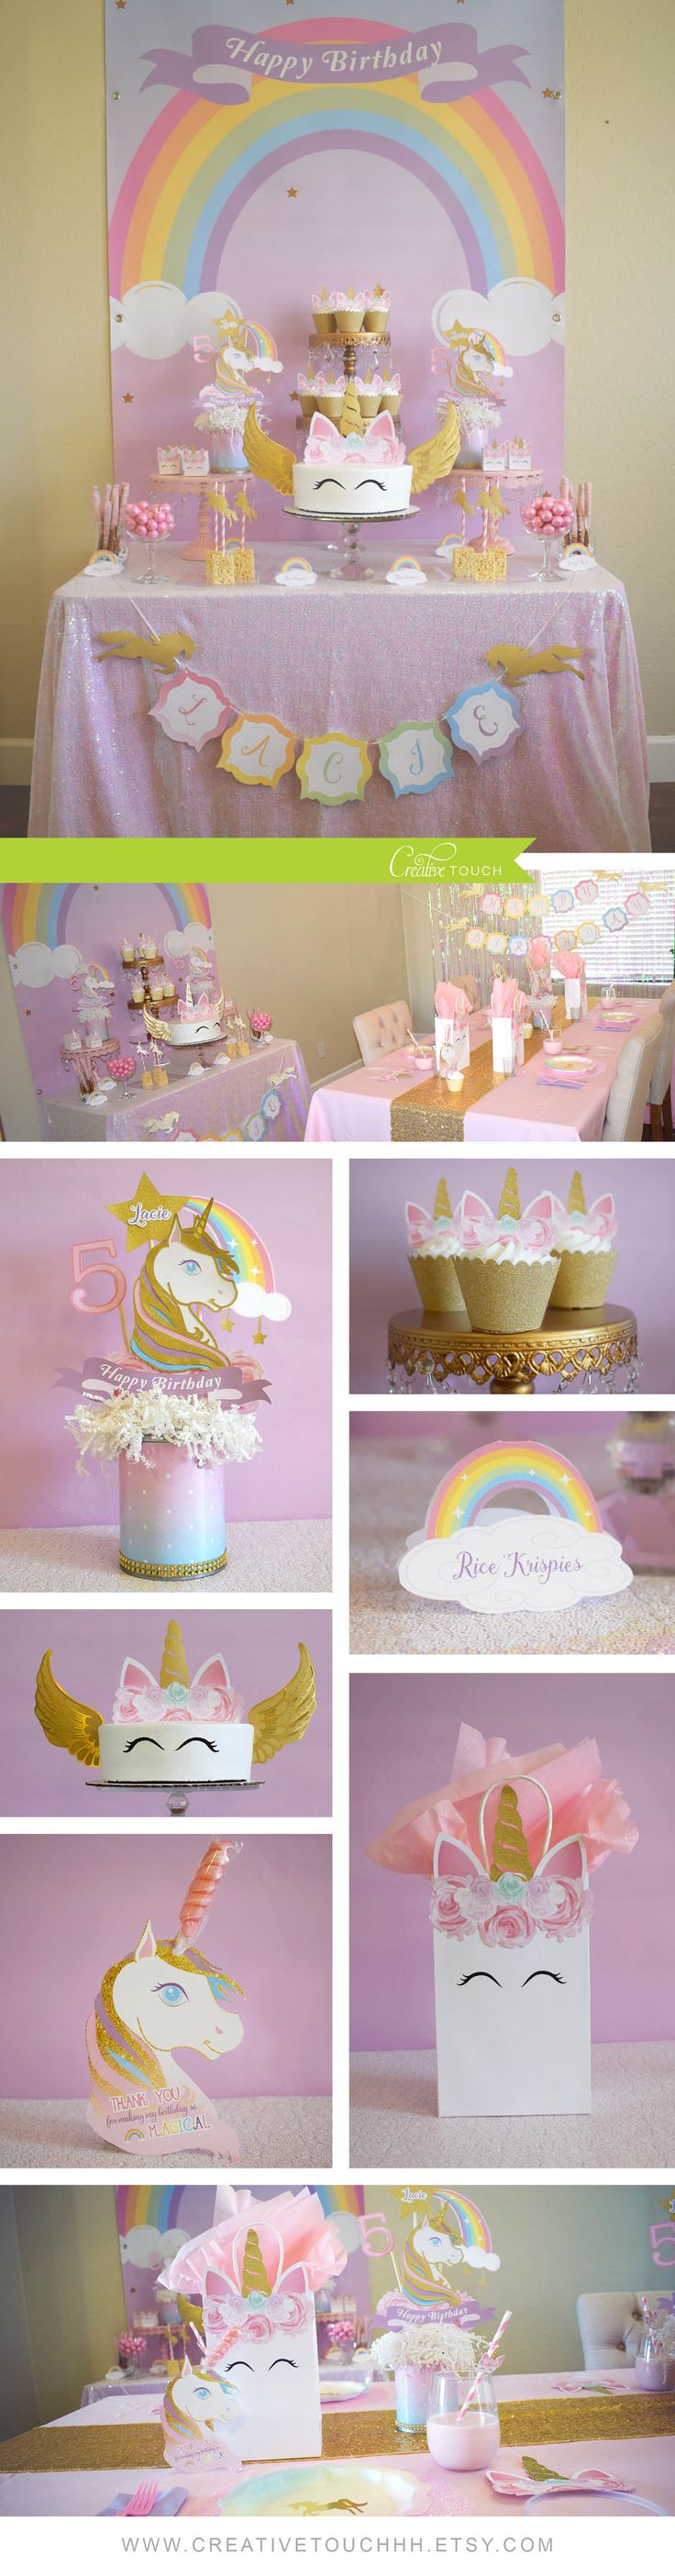 Unicorn Birthday Party Ideas! ✨✨  ❇ƒ๏ll๏ฬ ๓є❇ - @tessmcx ~☆~